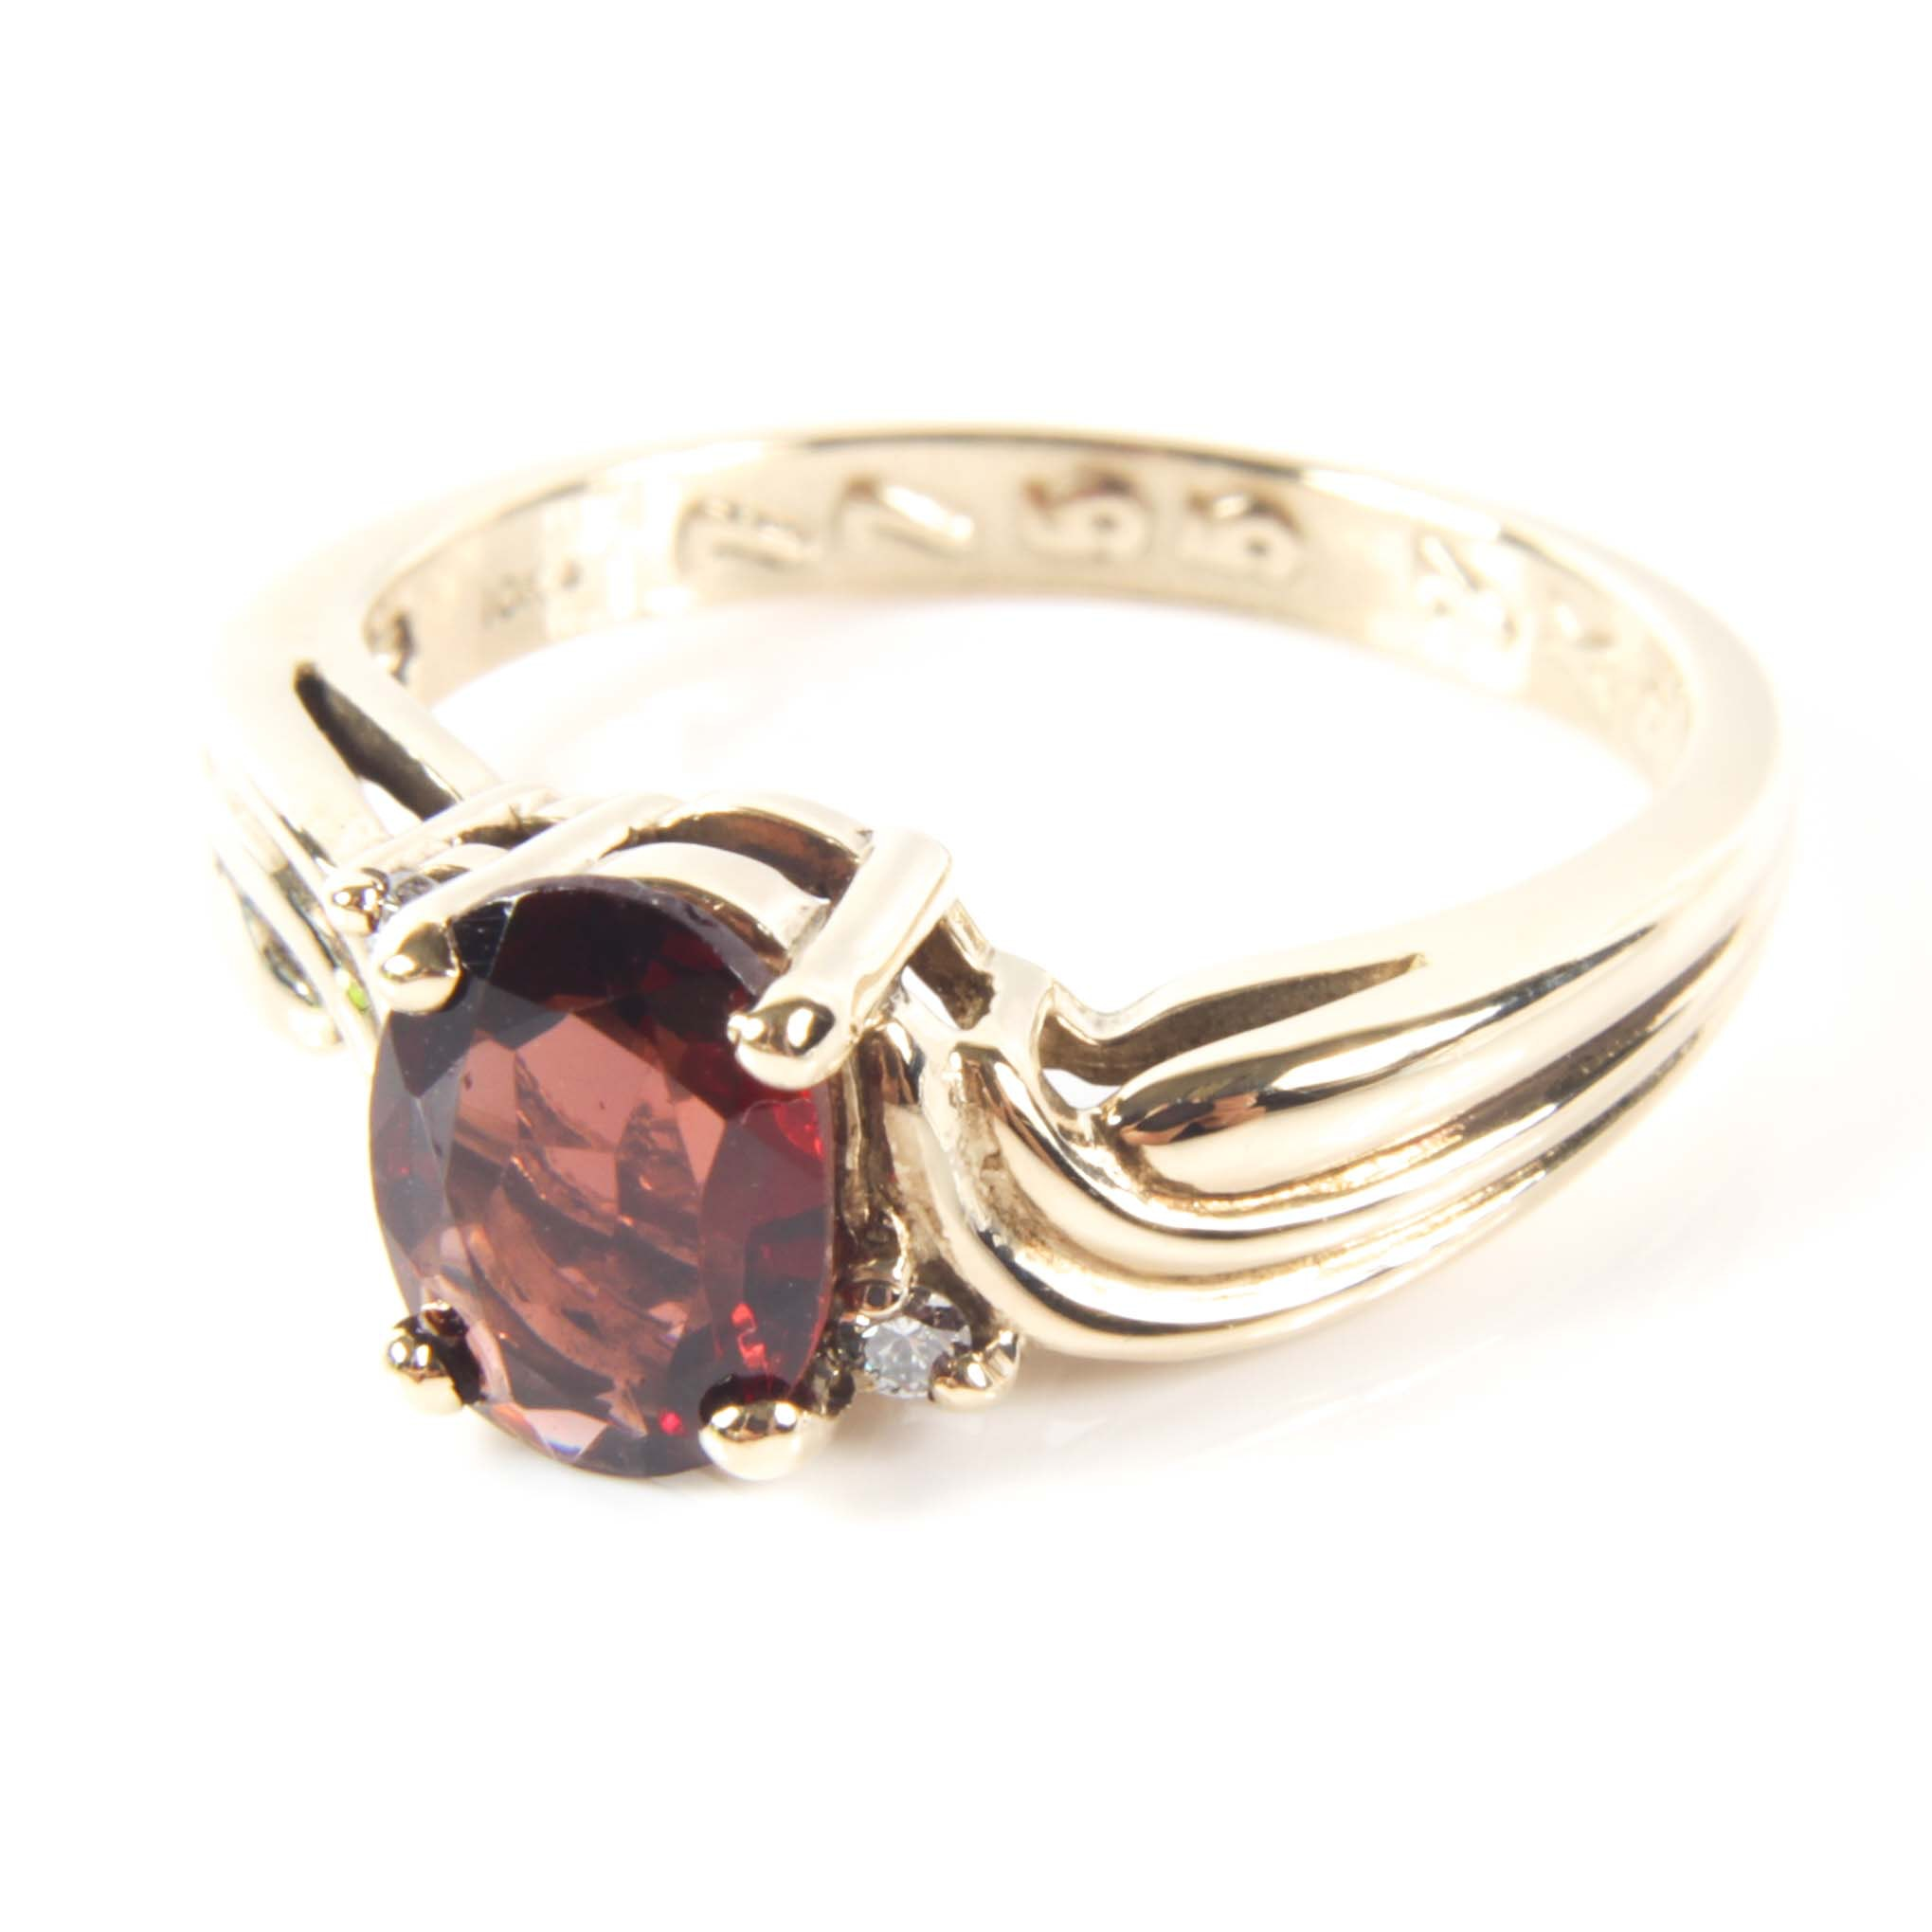 10K Yellow Gold 1.40 CT Garnet and Diamond Ring